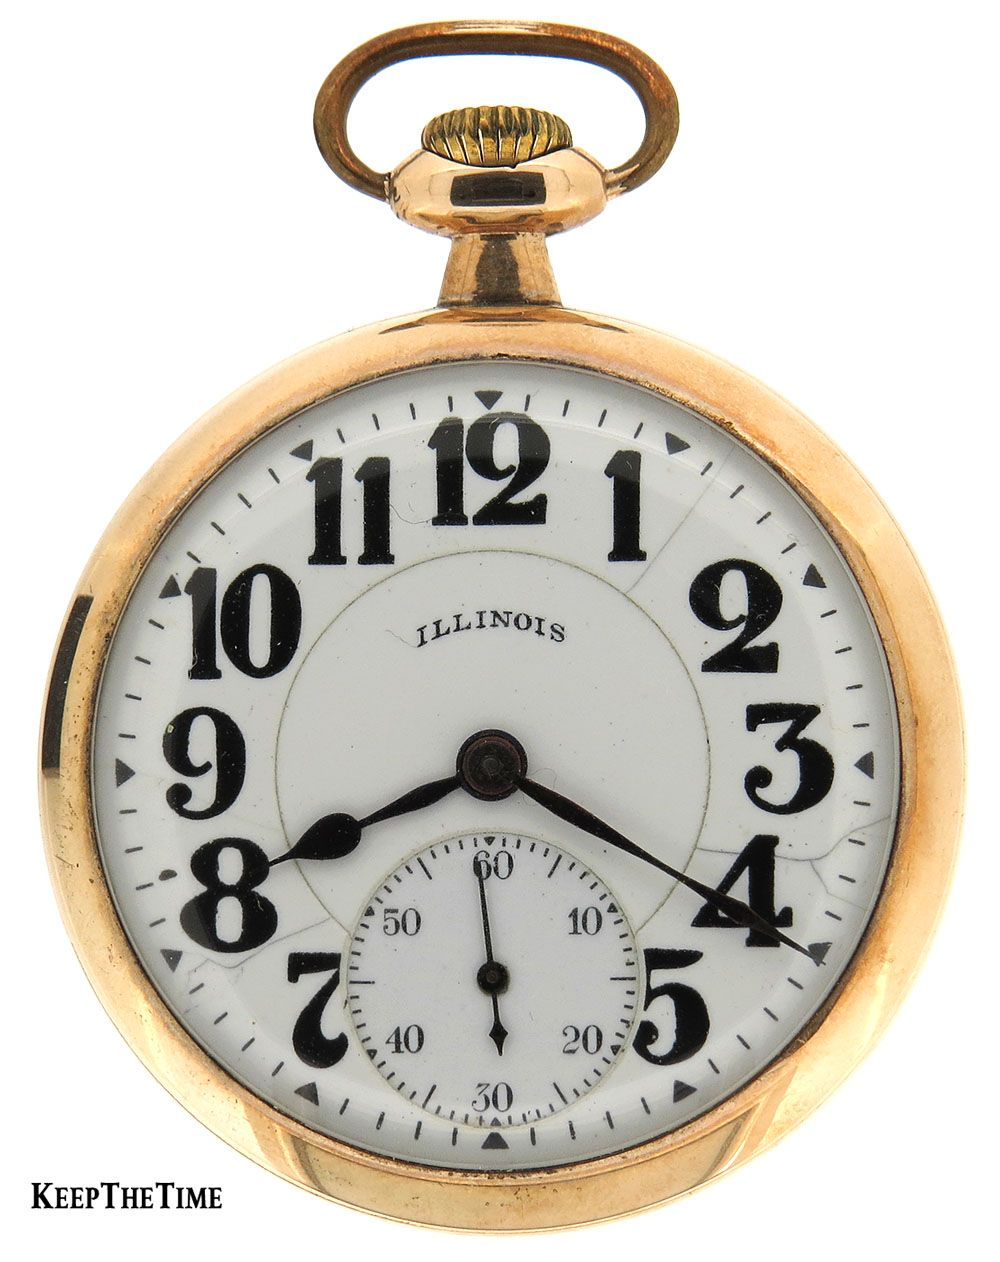 7dba0dba7 Illinois Bunn Special Pocket Watch Co Springfield 21J Circa 1920 :  KeepTheTime.com: Online Watch Store to Buy, Sell & Trade New & Pre-Owned  Authentic ...